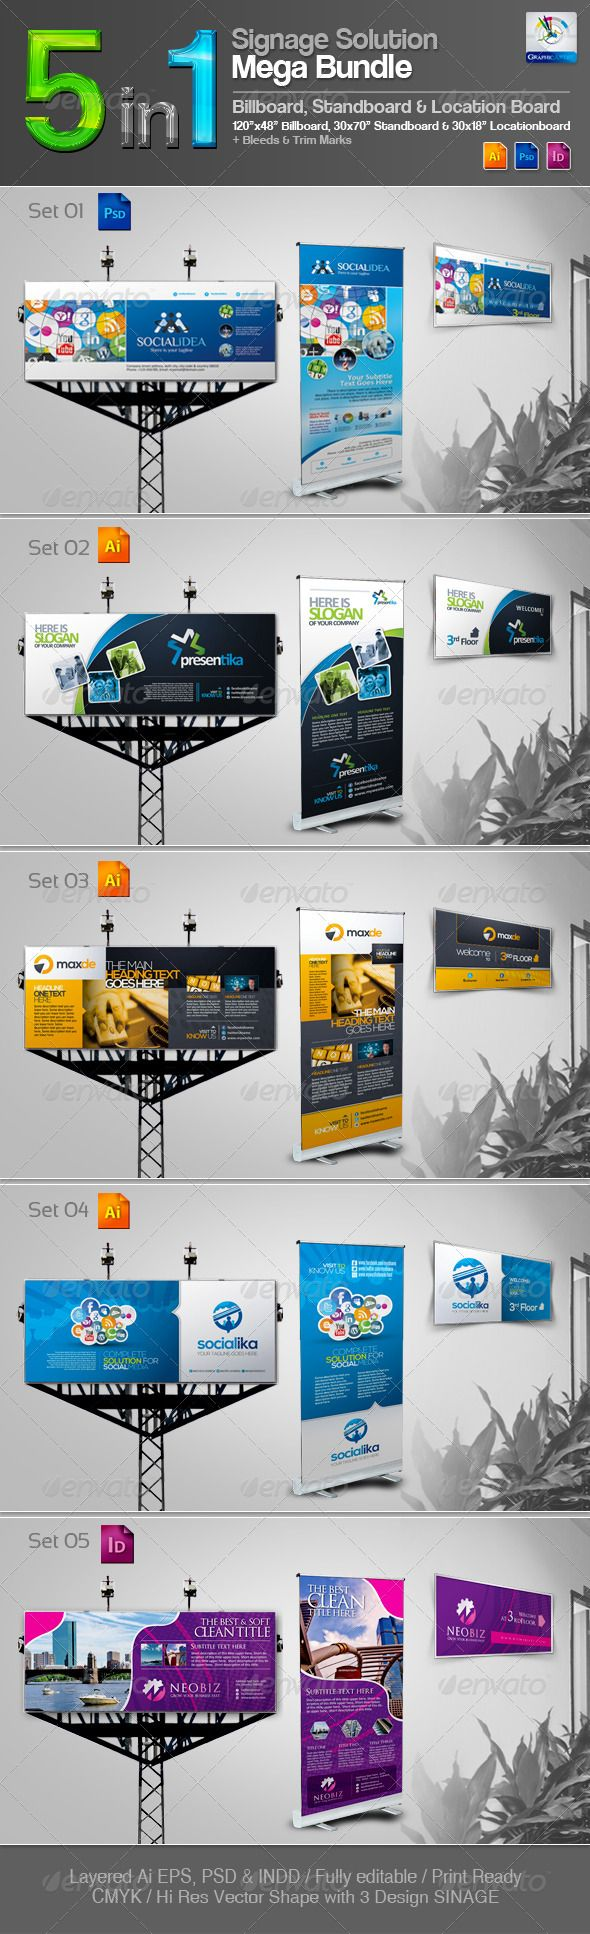 5 in 1 Signage Solution Mega Bundle — Photoshop PSD #outdoor banner #location ...